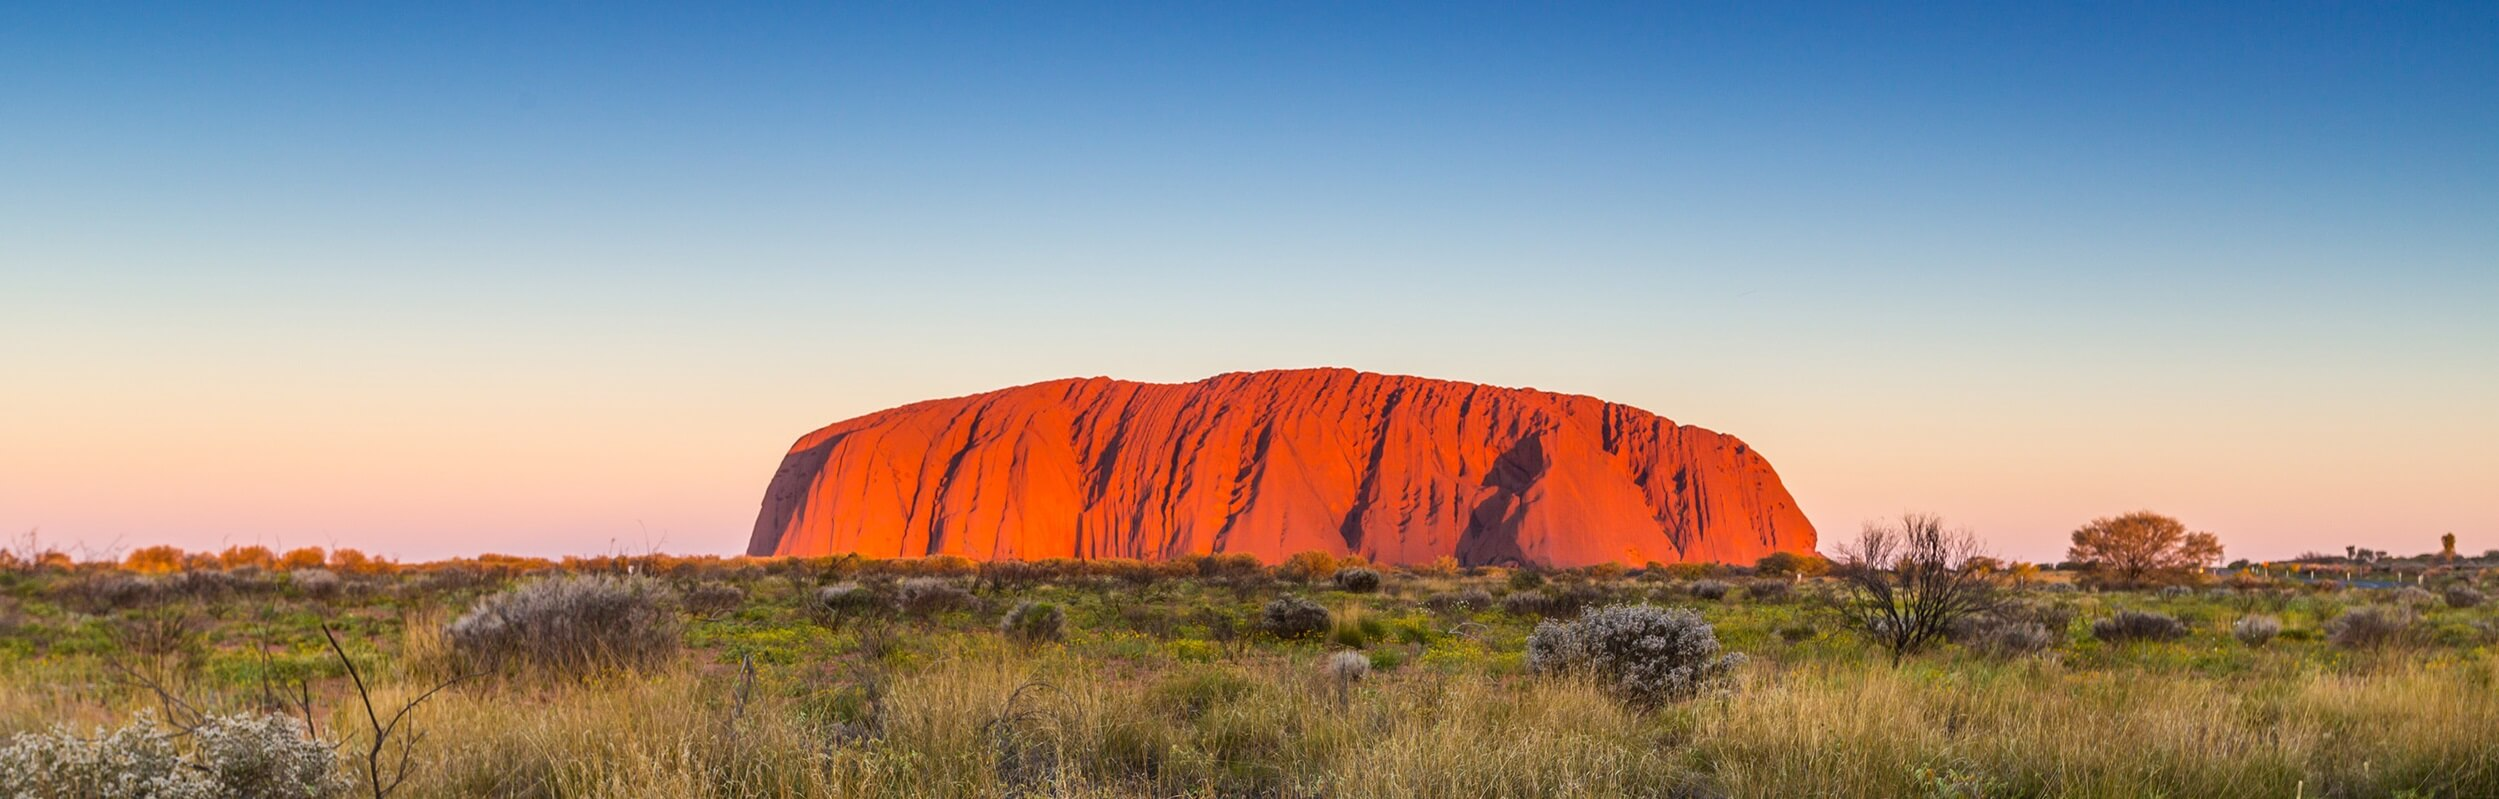 How can you see Uluru?